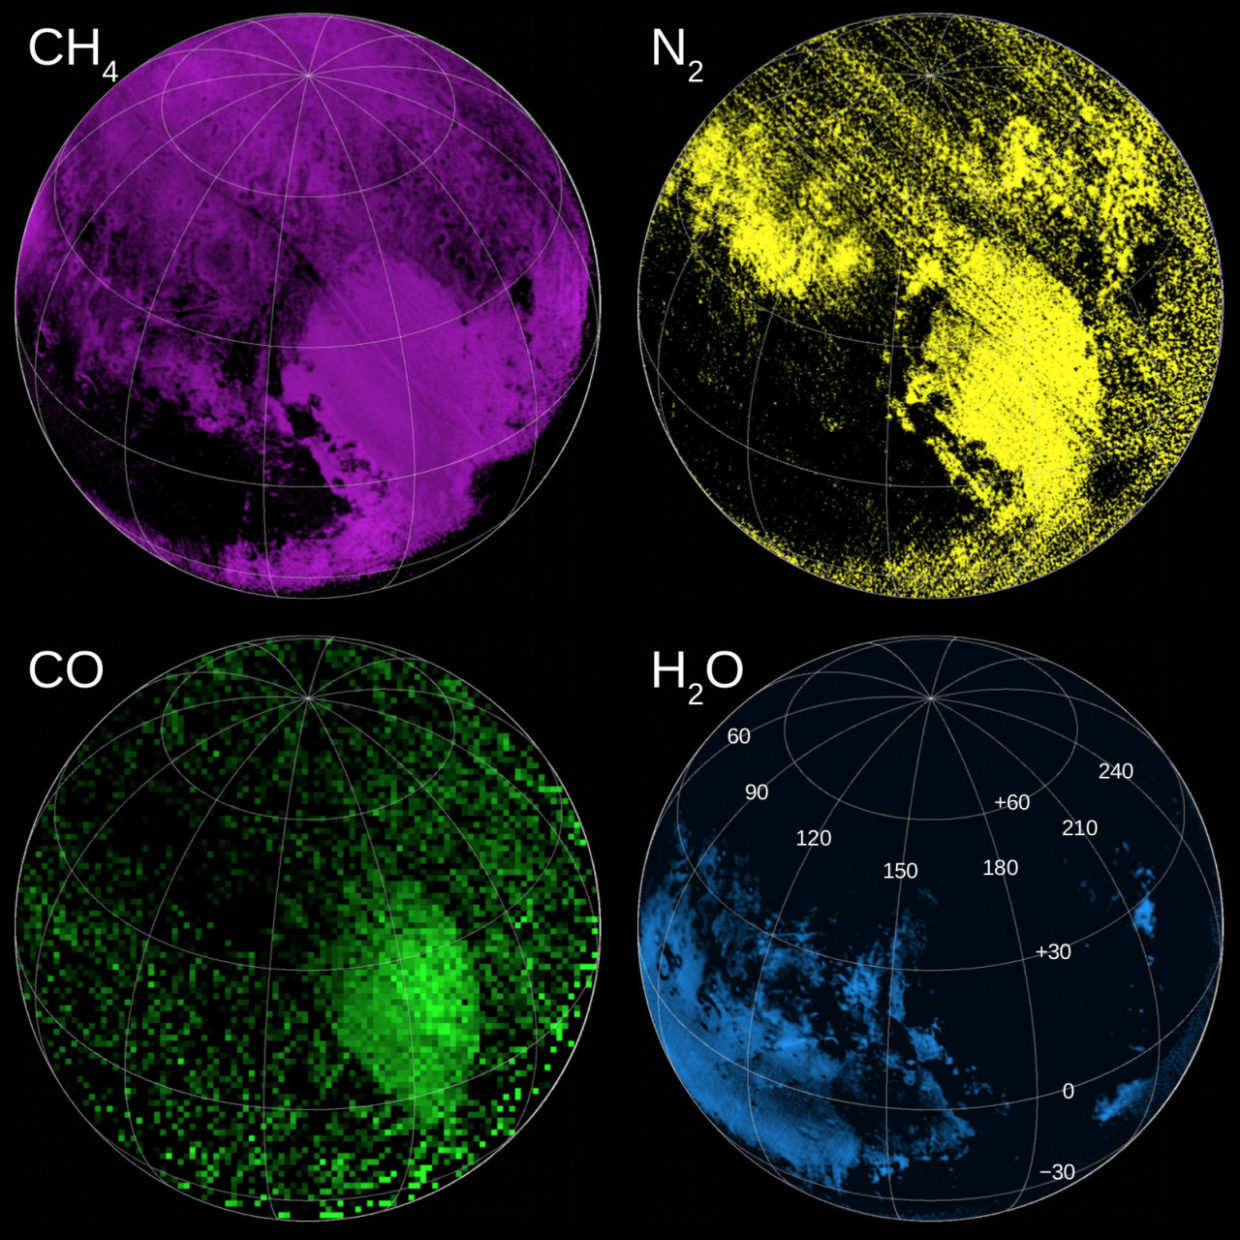 Compositional maps of Pluto